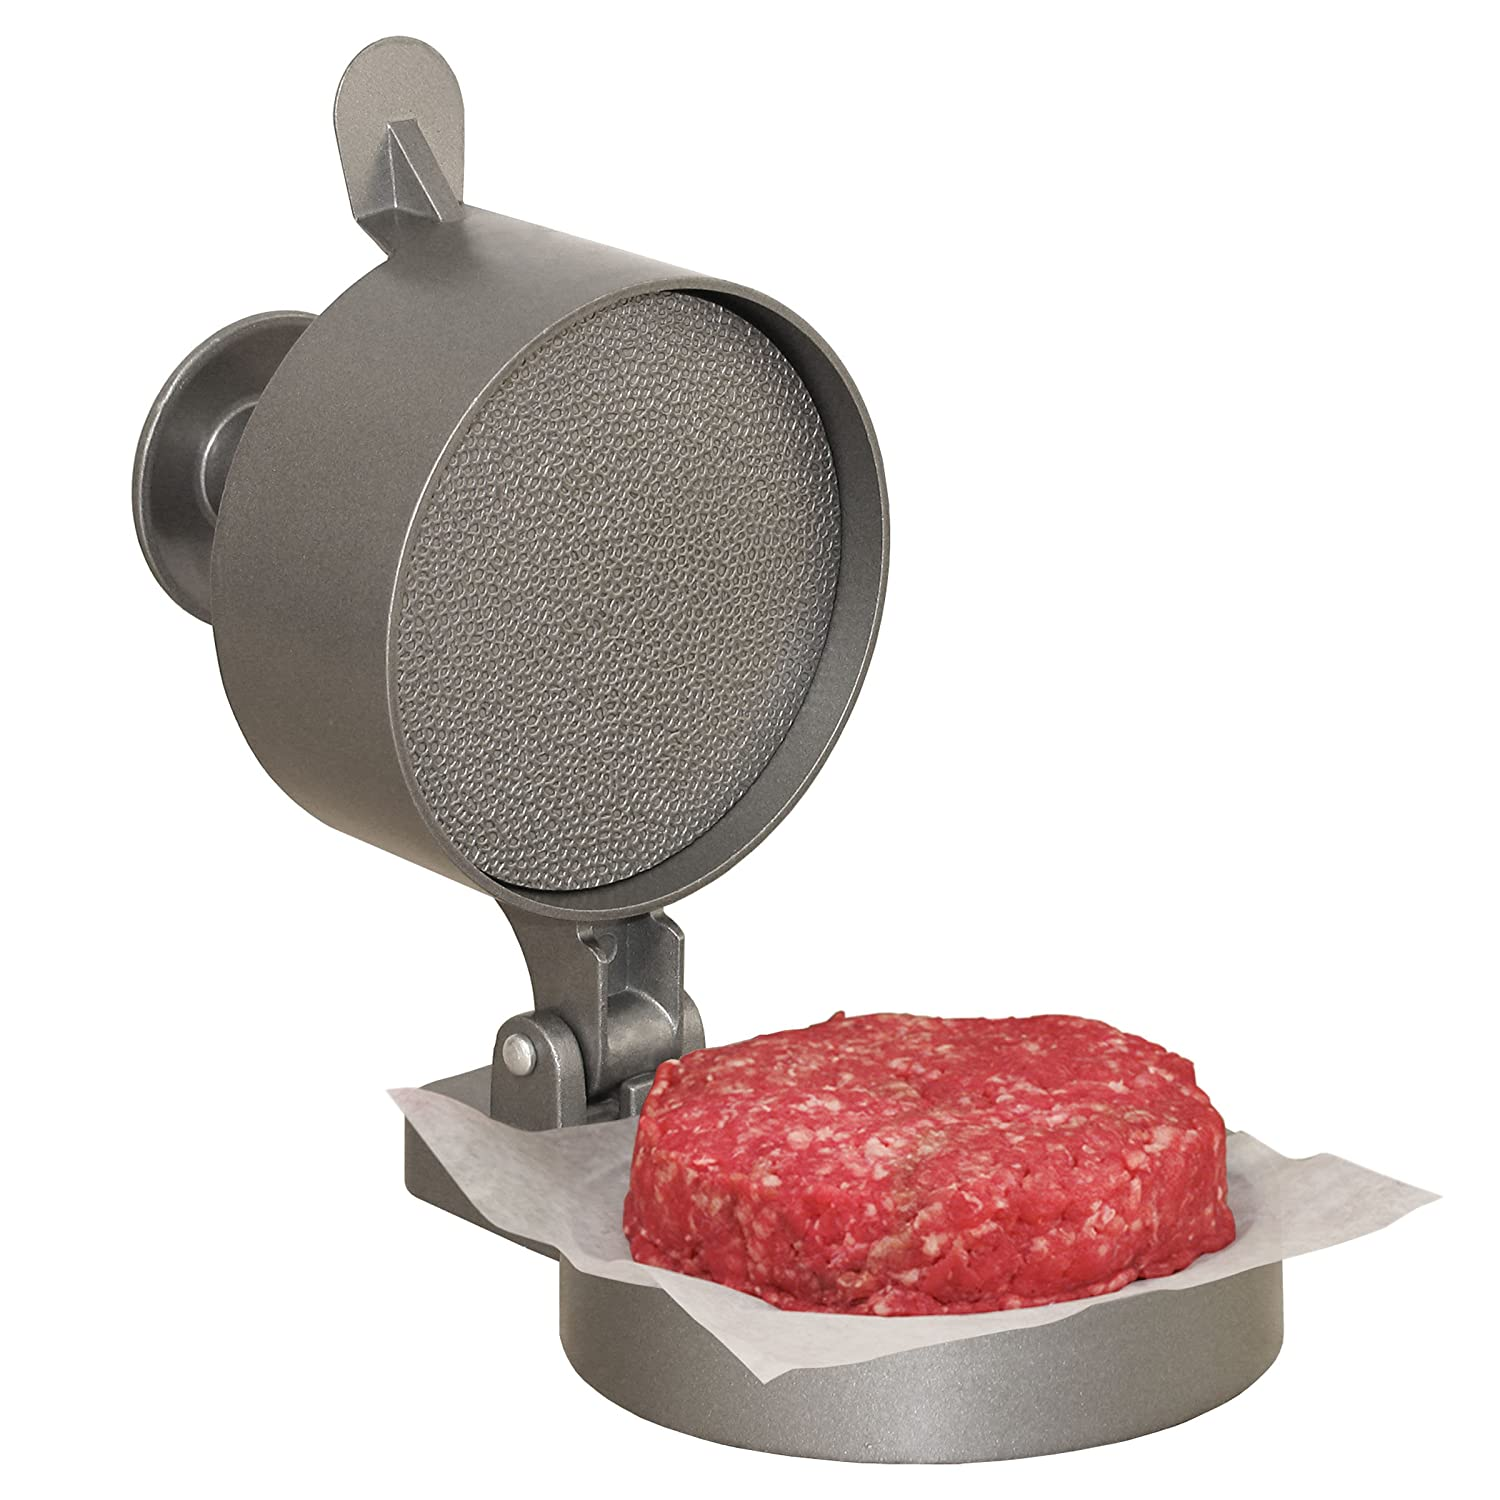 Best Burger Press 2019: Top 5+ Recommended 4 #cookymom